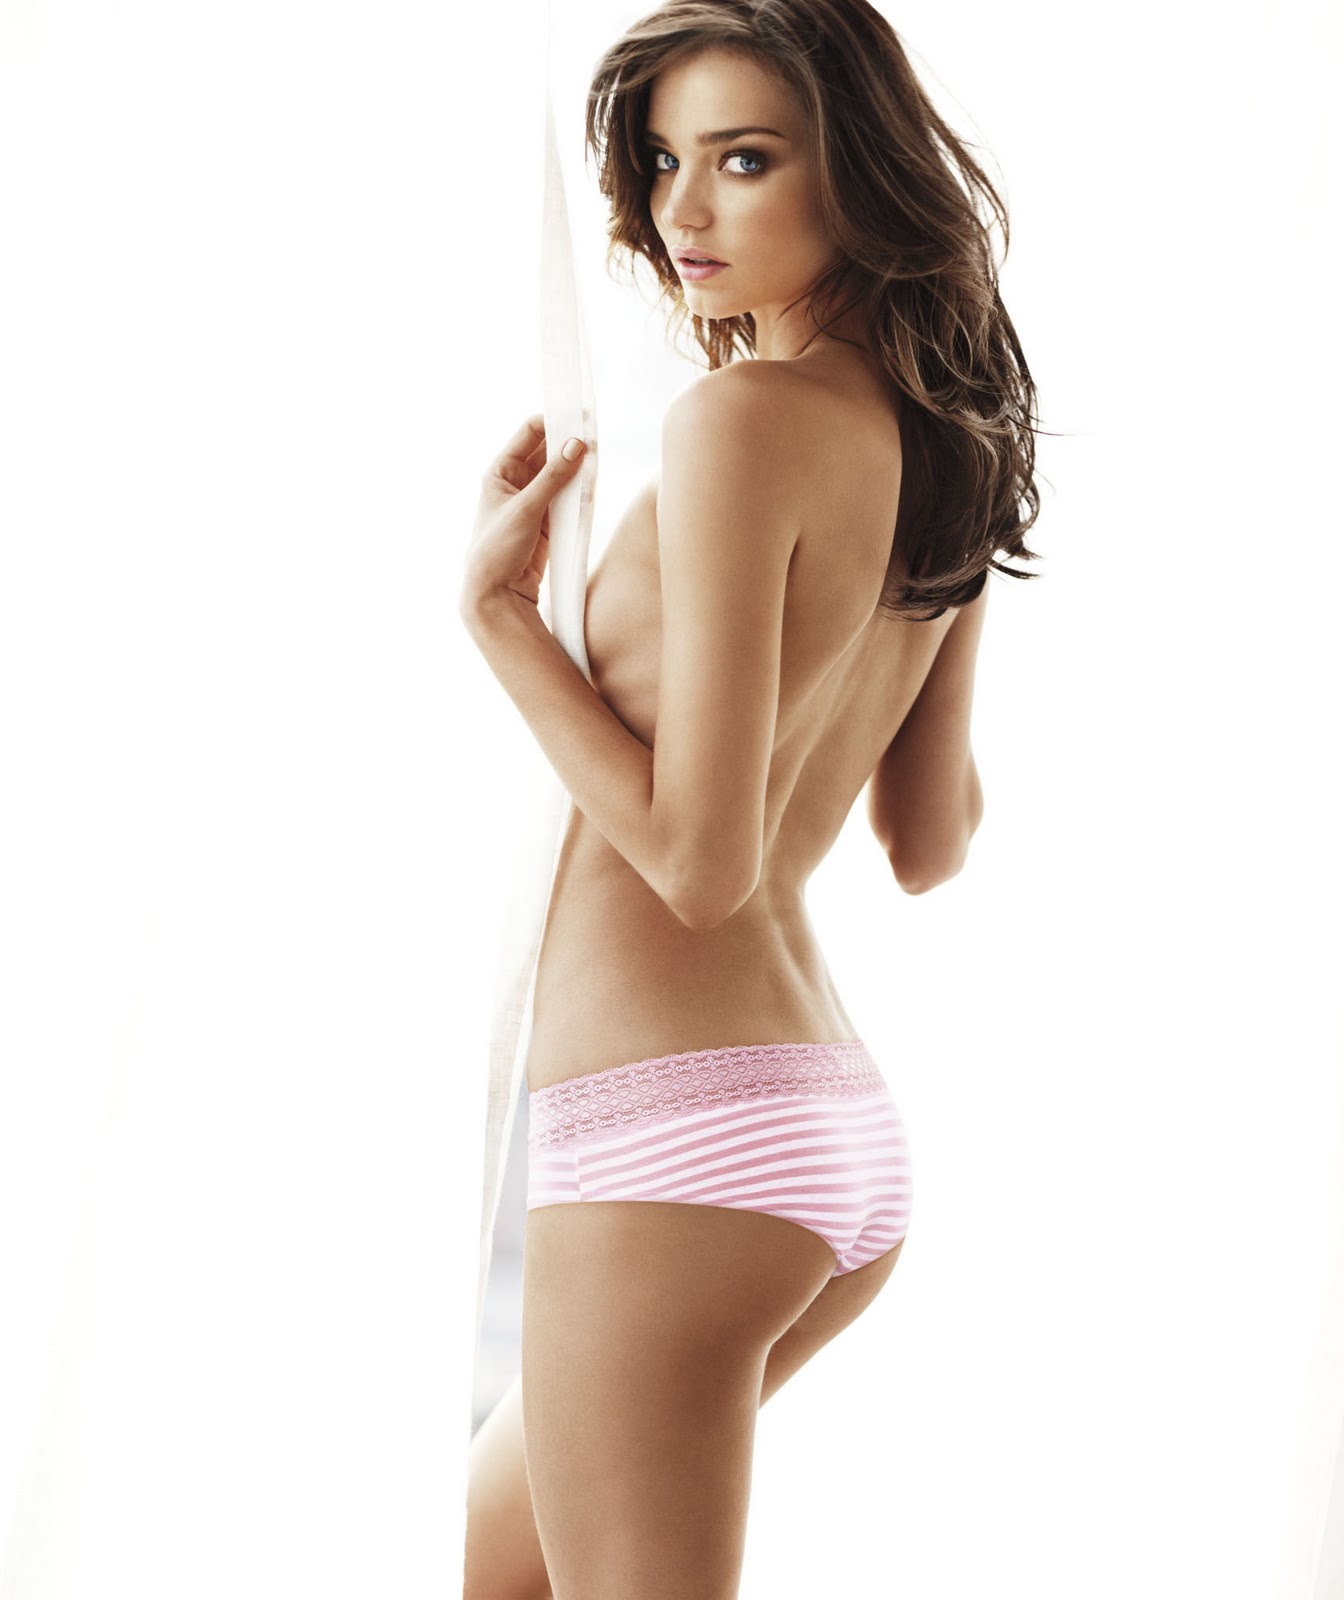 If you prefer cotton panties, you are probably a practical person. After all, cotton panties are reasonably priced, comfortable and made of natural fibers that provide a breathable fit.